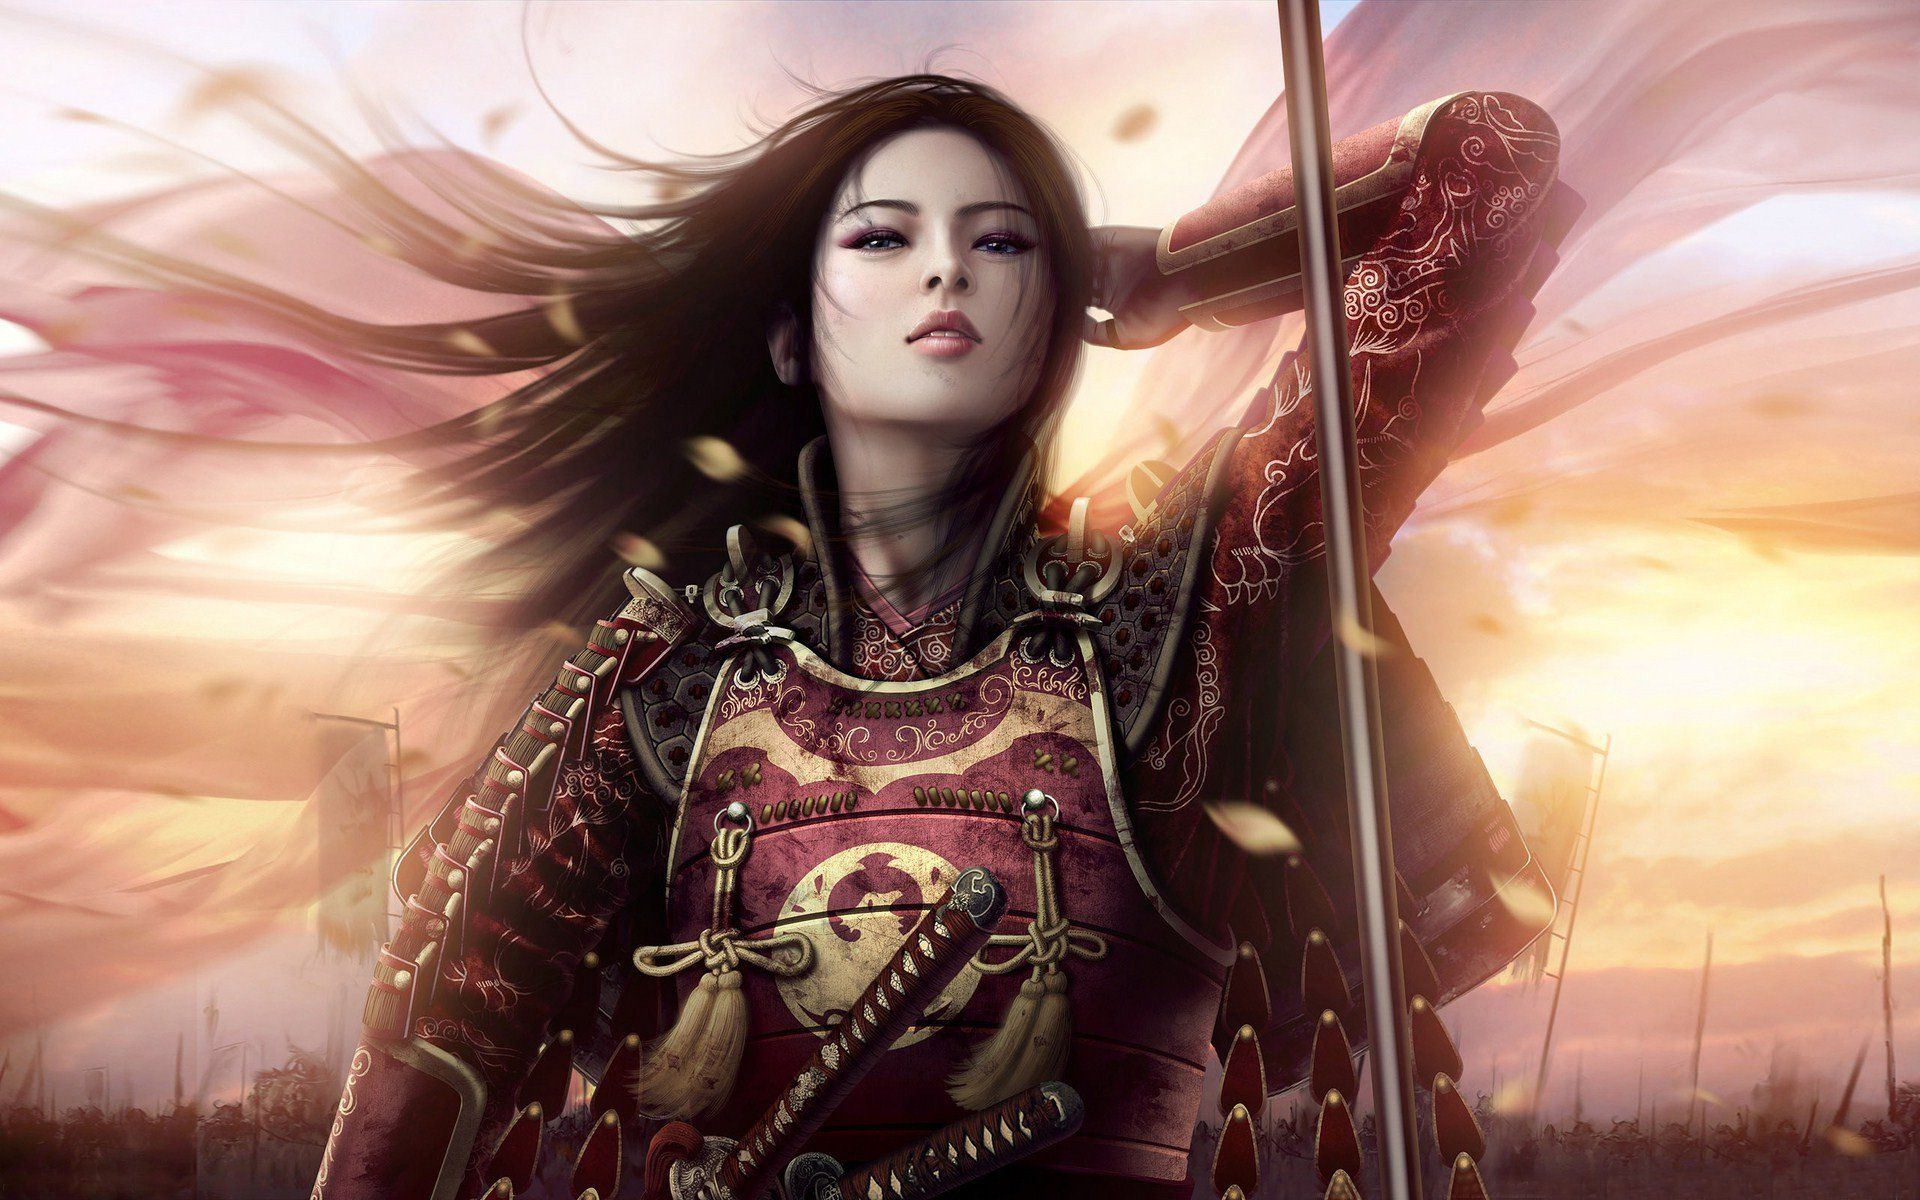 1920x1200 156 Samurai HD Wallpapers   Background Images - Wallpaper Abyss